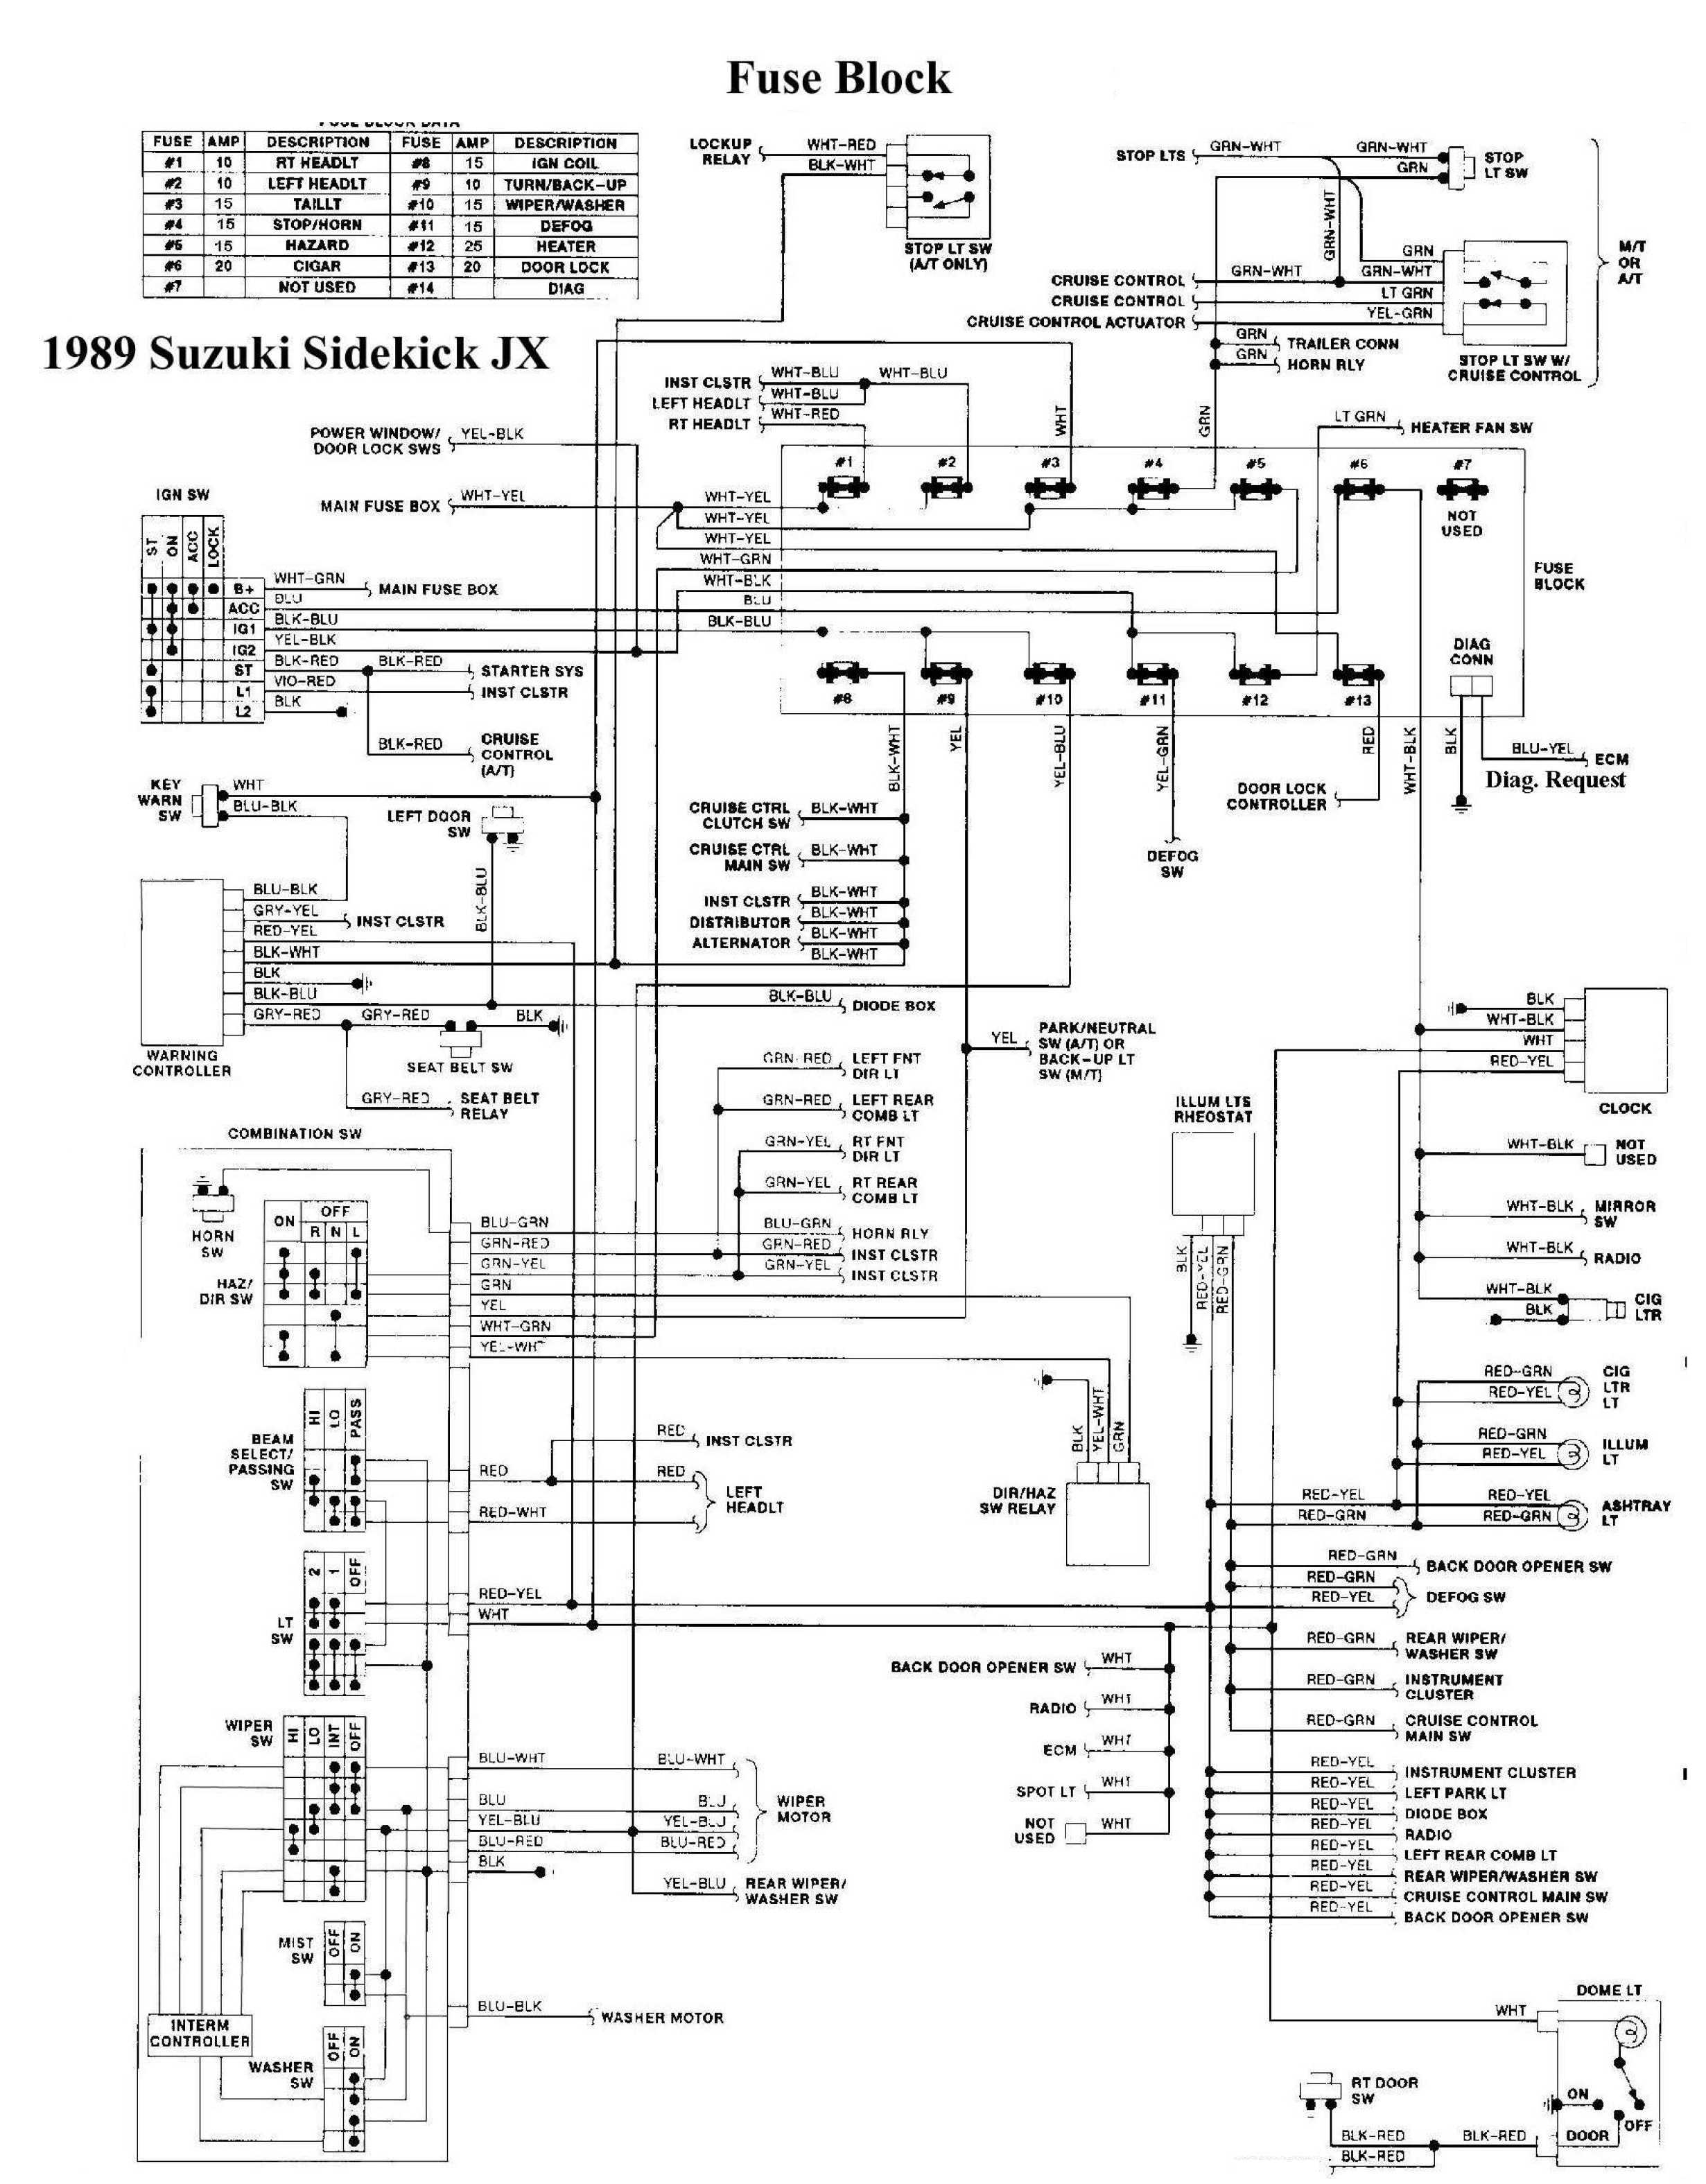 89_elect3a headlight switch problem! suzuki forums suzuki forum site 1996 geo metro wiring diagram at bakdesigns.co